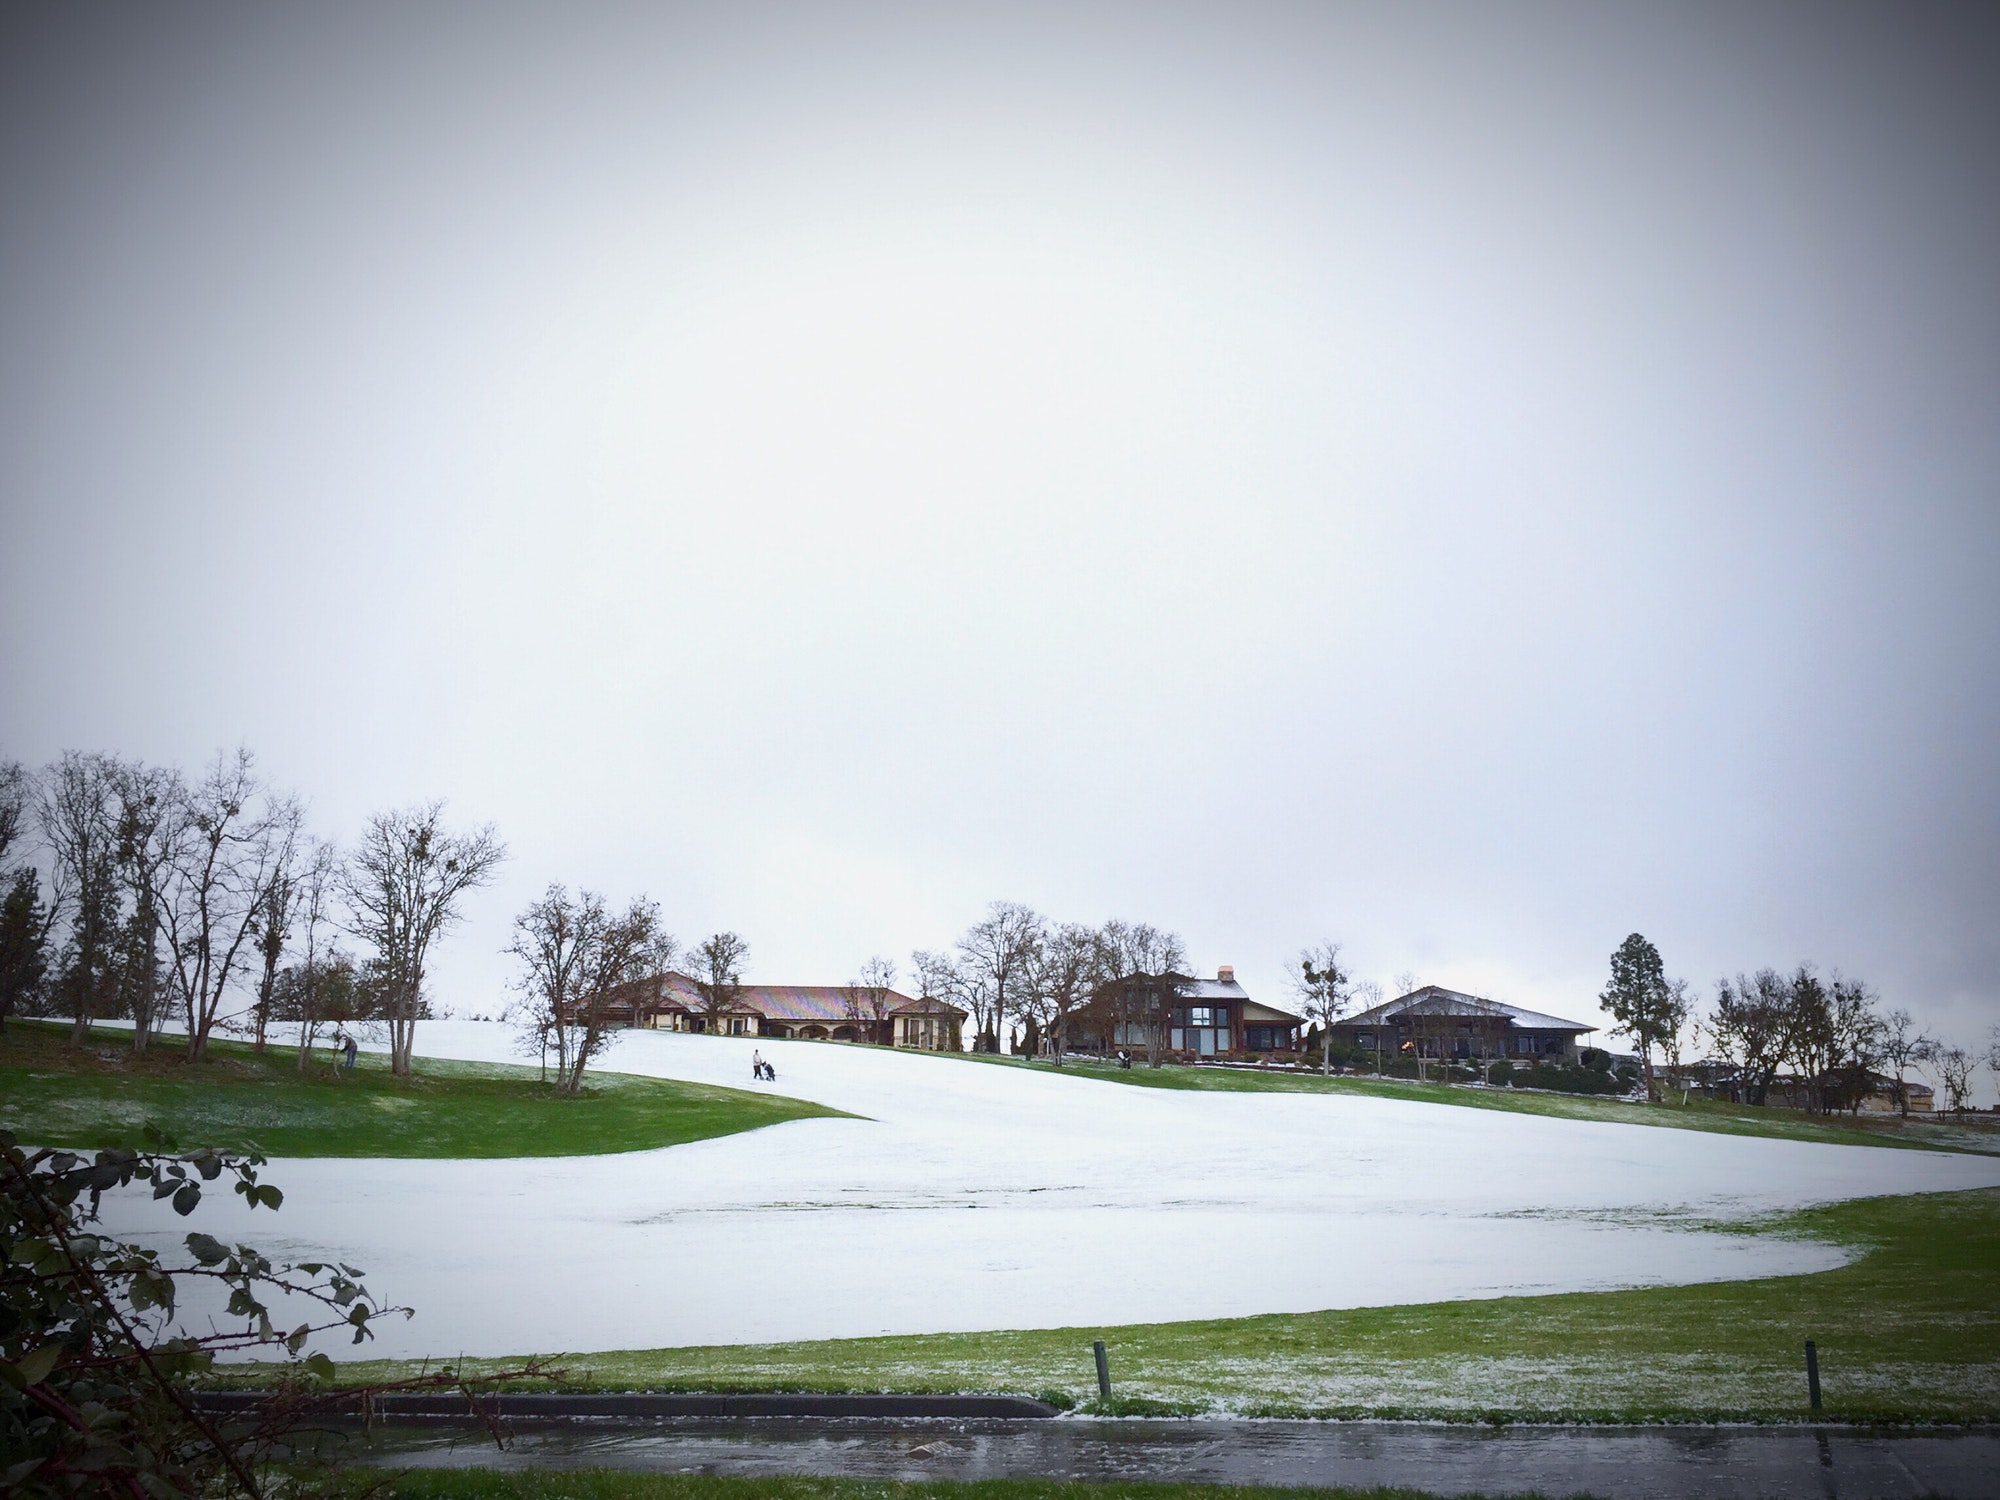 Golfing in the snow